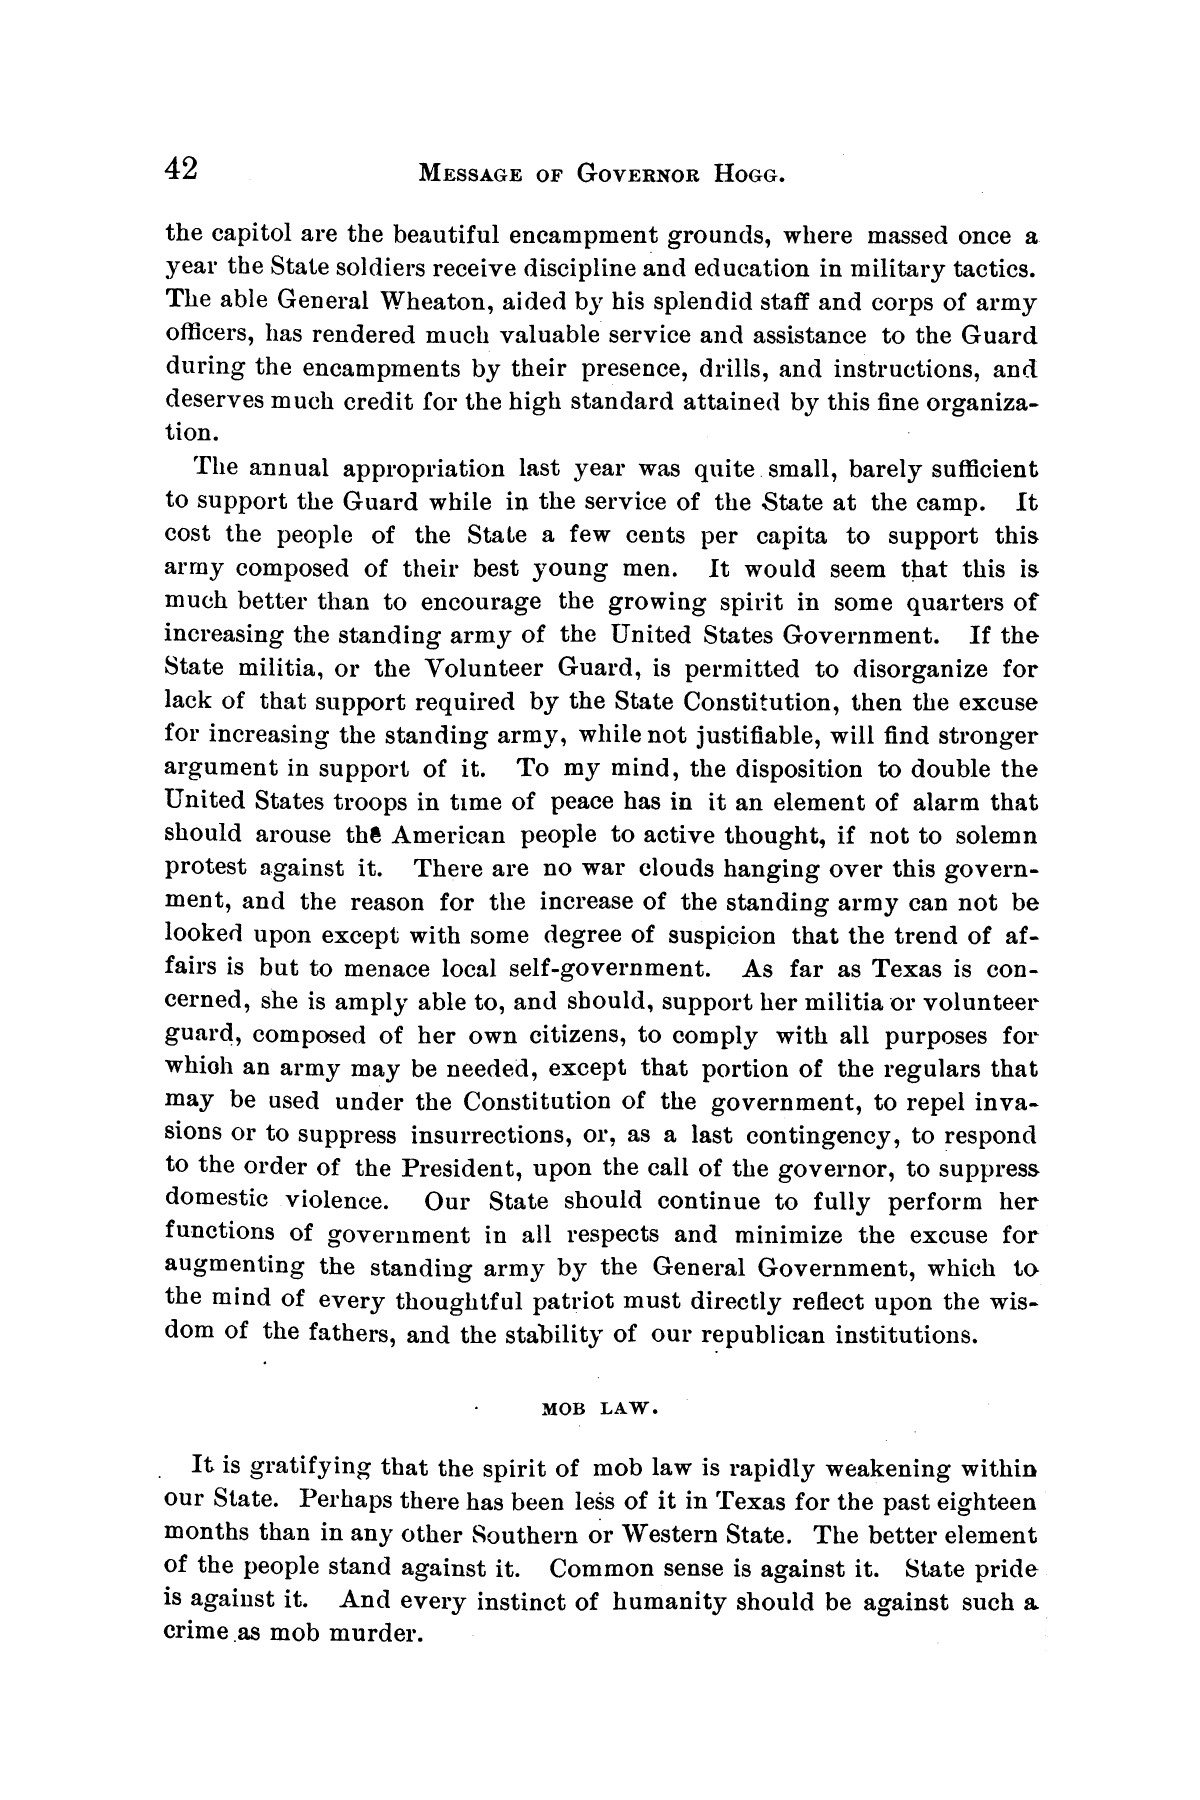 Message of Governor James S. Hogg to the twenty-fourth legislature of Texas                                                                                                      [Sequence #]: 42 of 48